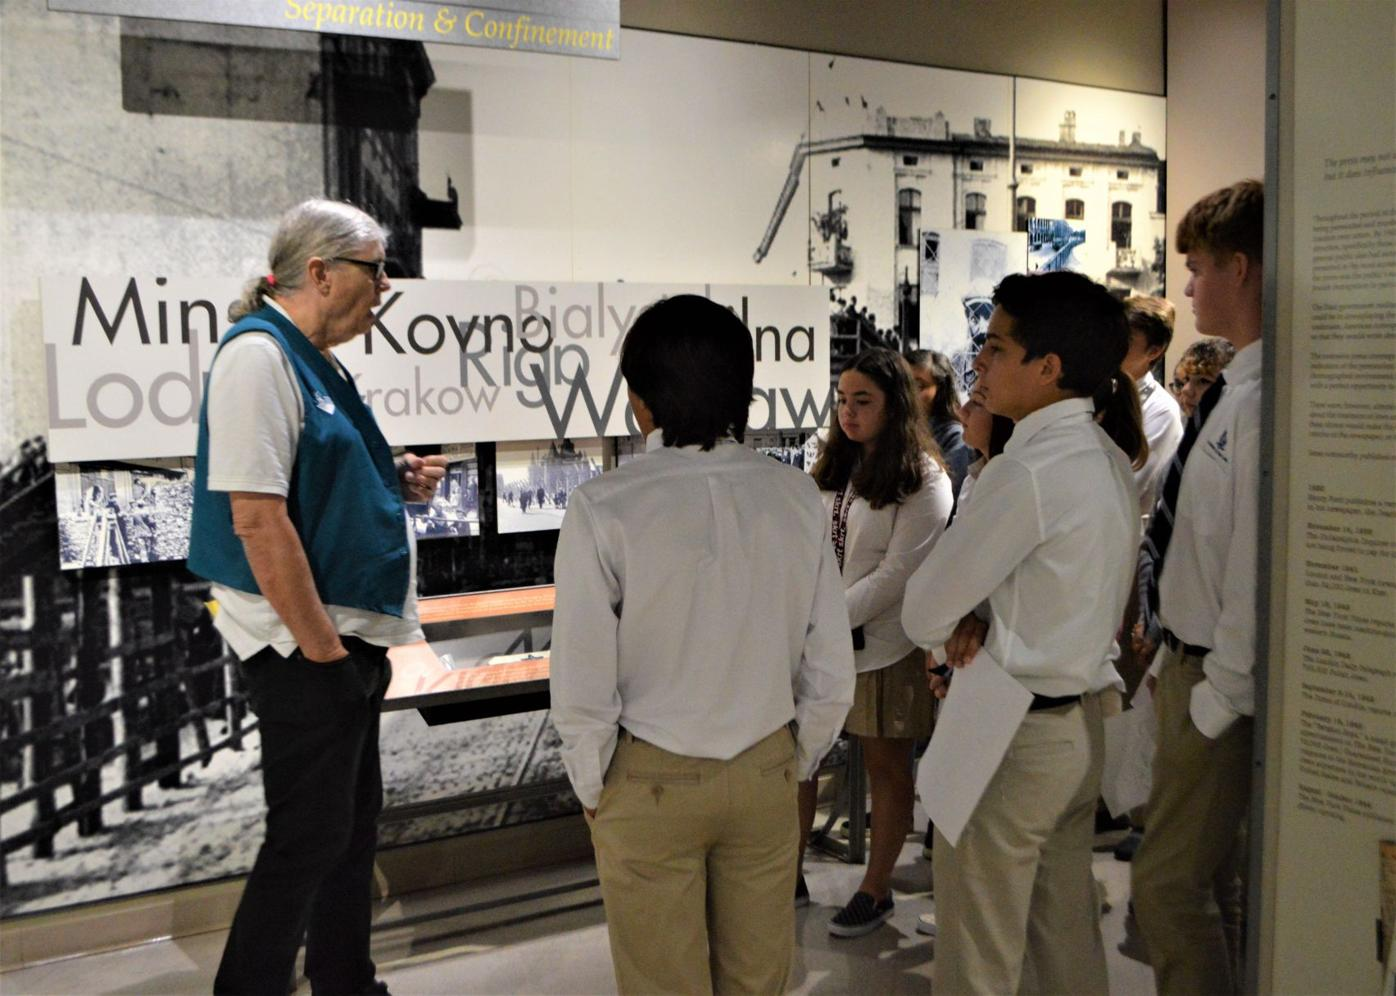 Learning lessons of hope at the Florida Holocaust Museum